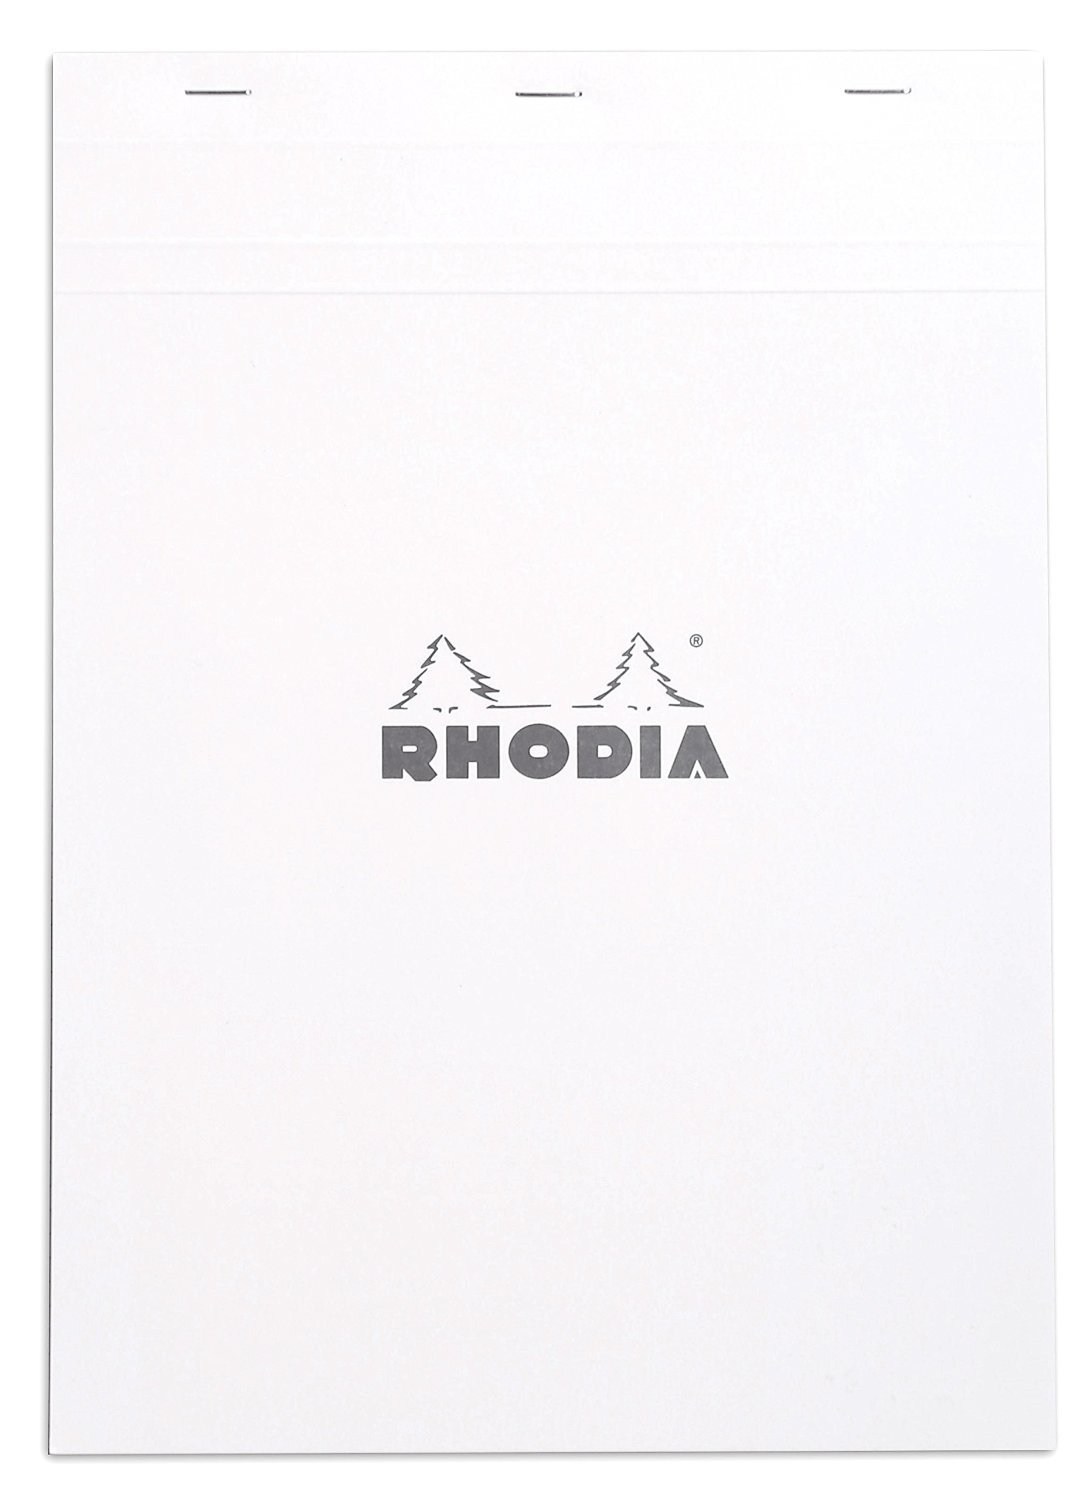 Pack of 5 Rhodia Ice Pad Staplebound 8.25x11.75 Grid